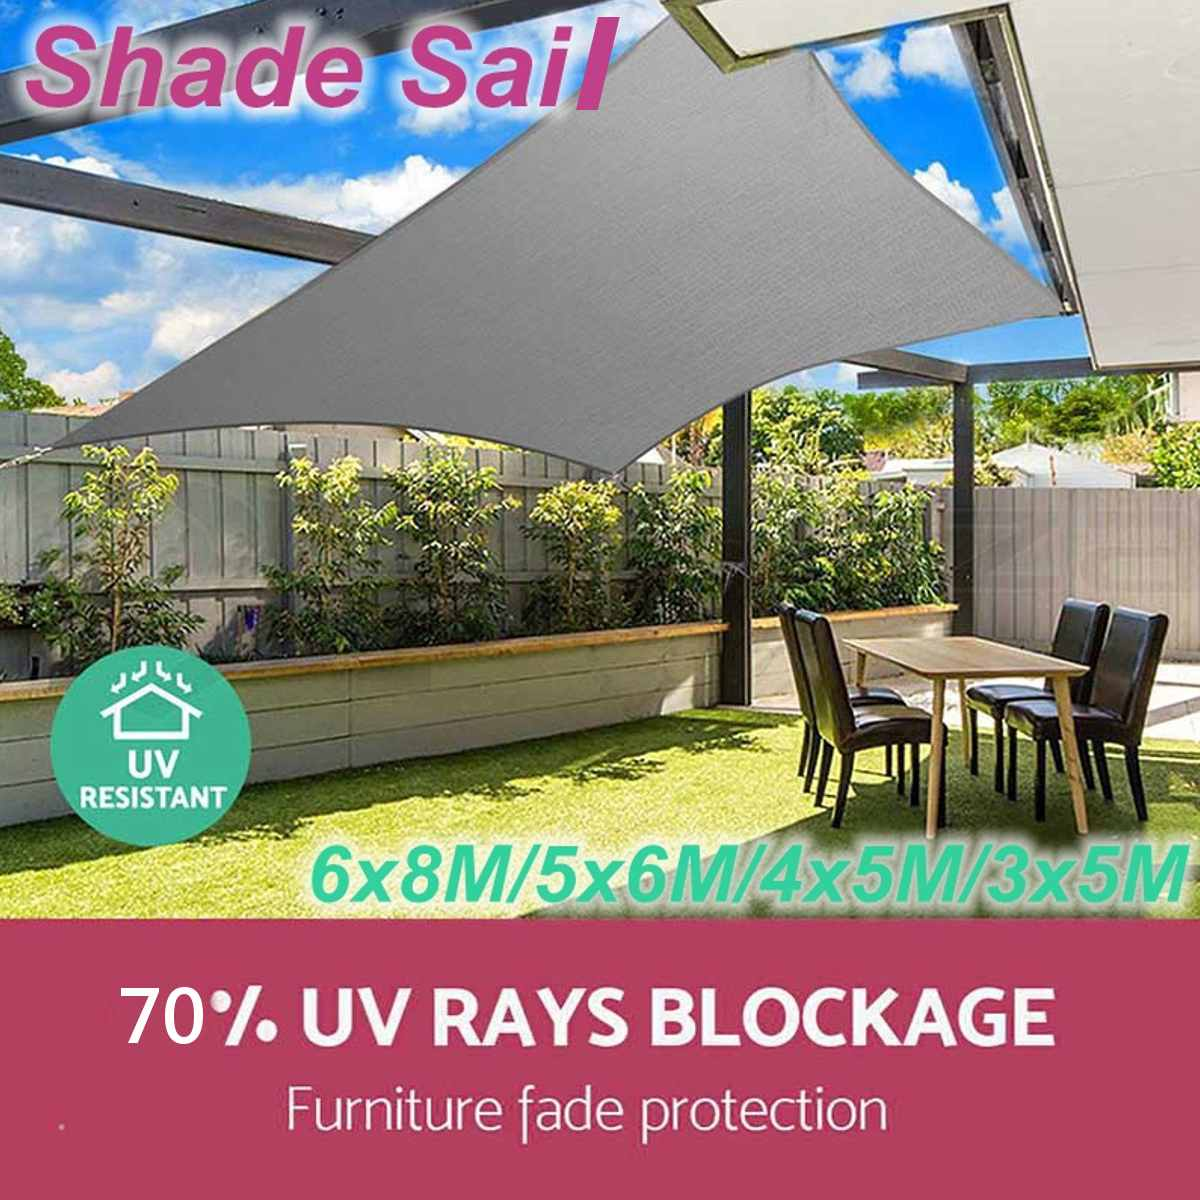 3/4*5m 5*6m 6*8m 70% UV Protection Waterproof Sun Sunscreen Shade Sails Net Oxford Cloth Outdoor Canopies Yard Garden Encrypted3/4*5m 5*6m 6*8m 70% UV Protection Waterproof Sun Sunscreen Shade Sails Net Oxford Cloth Outdoor Canopies Yard Garden Encrypted